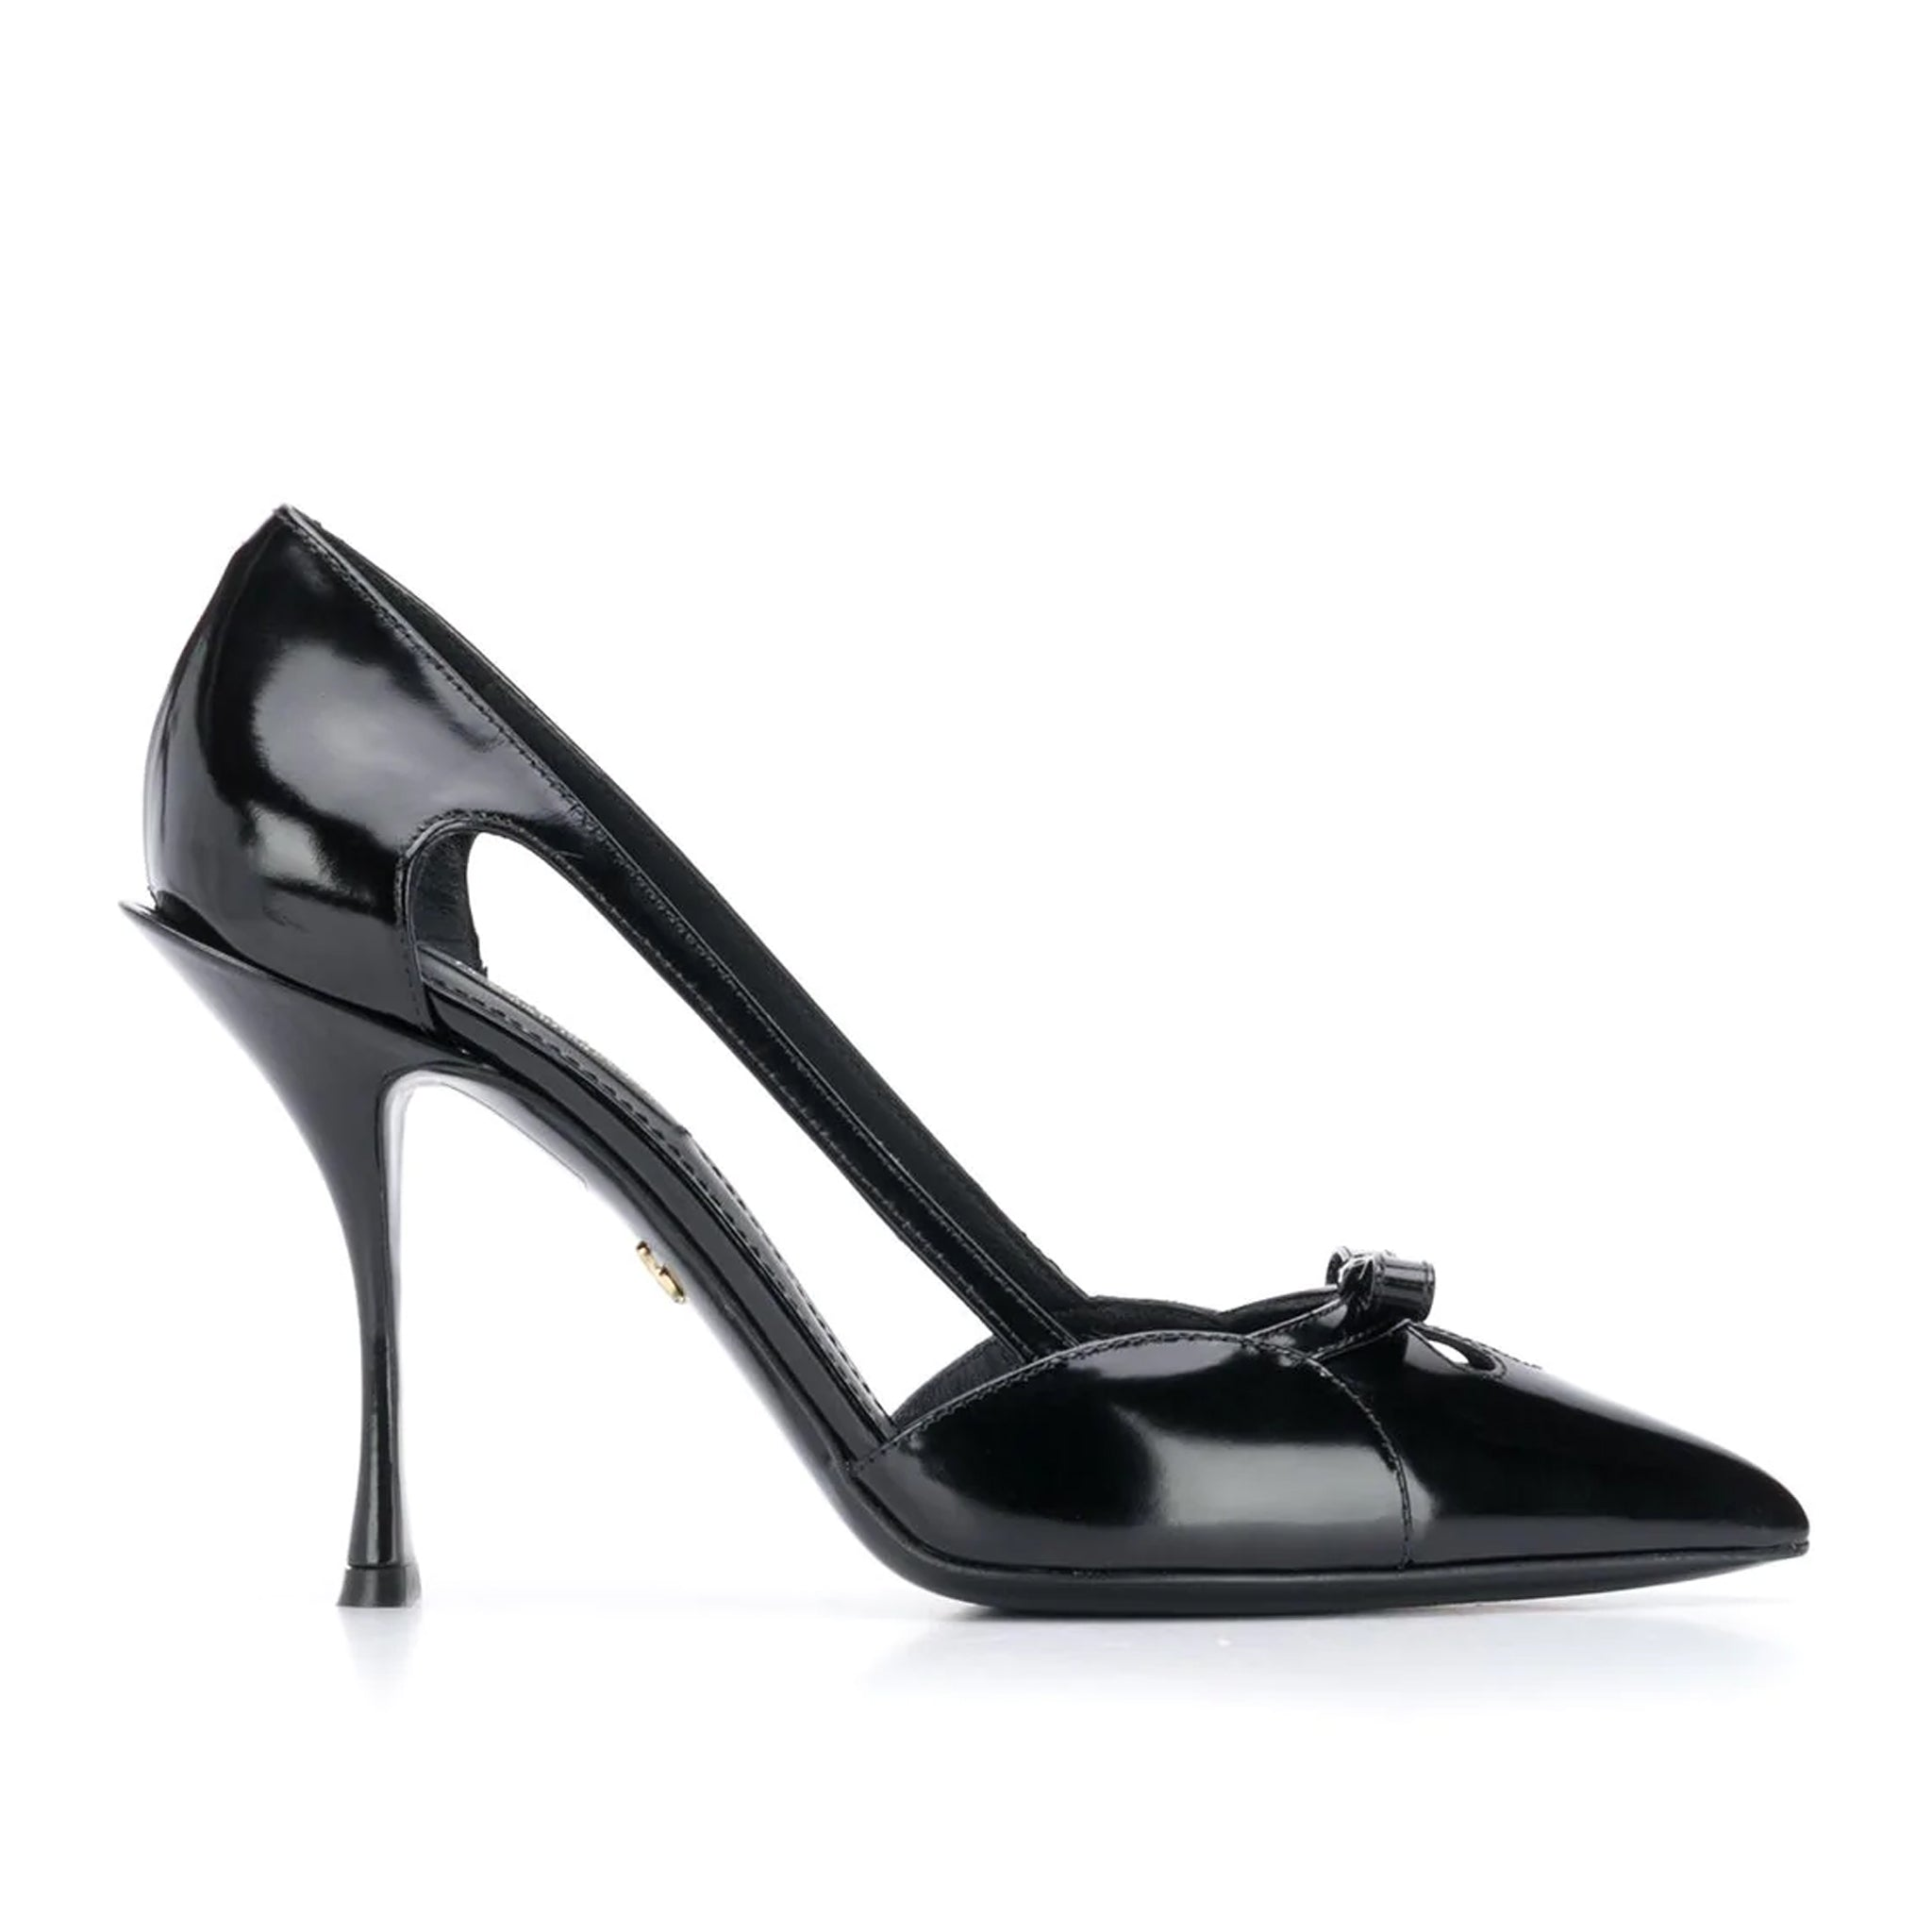 Dolce & Gabbana Patent Leather Bow Pumps